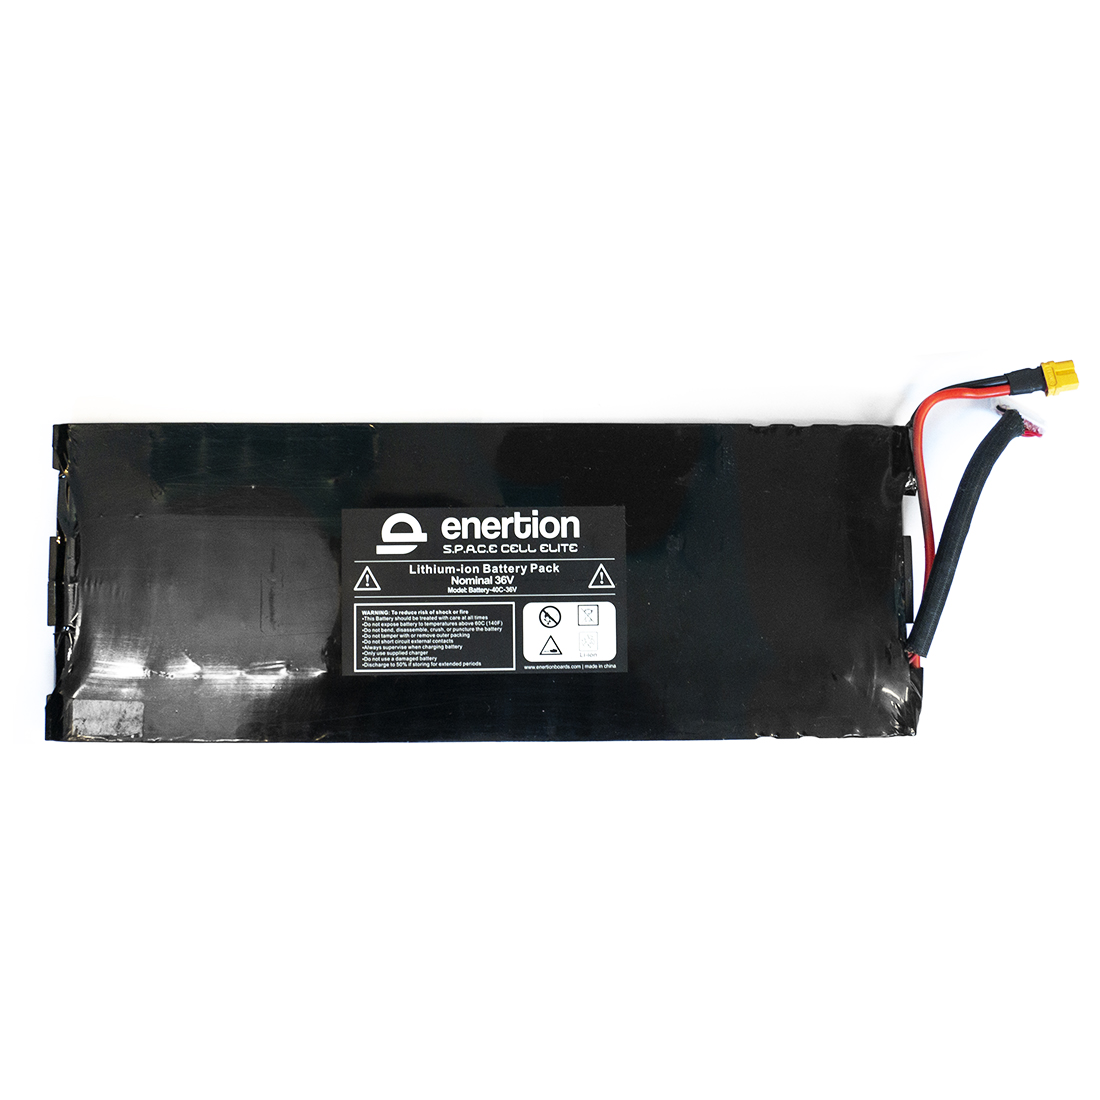 Enertion Raptor Battery The Enertion SPACE Cell Elite battery pack. Lithium-ion battery pack, 40C 36V.